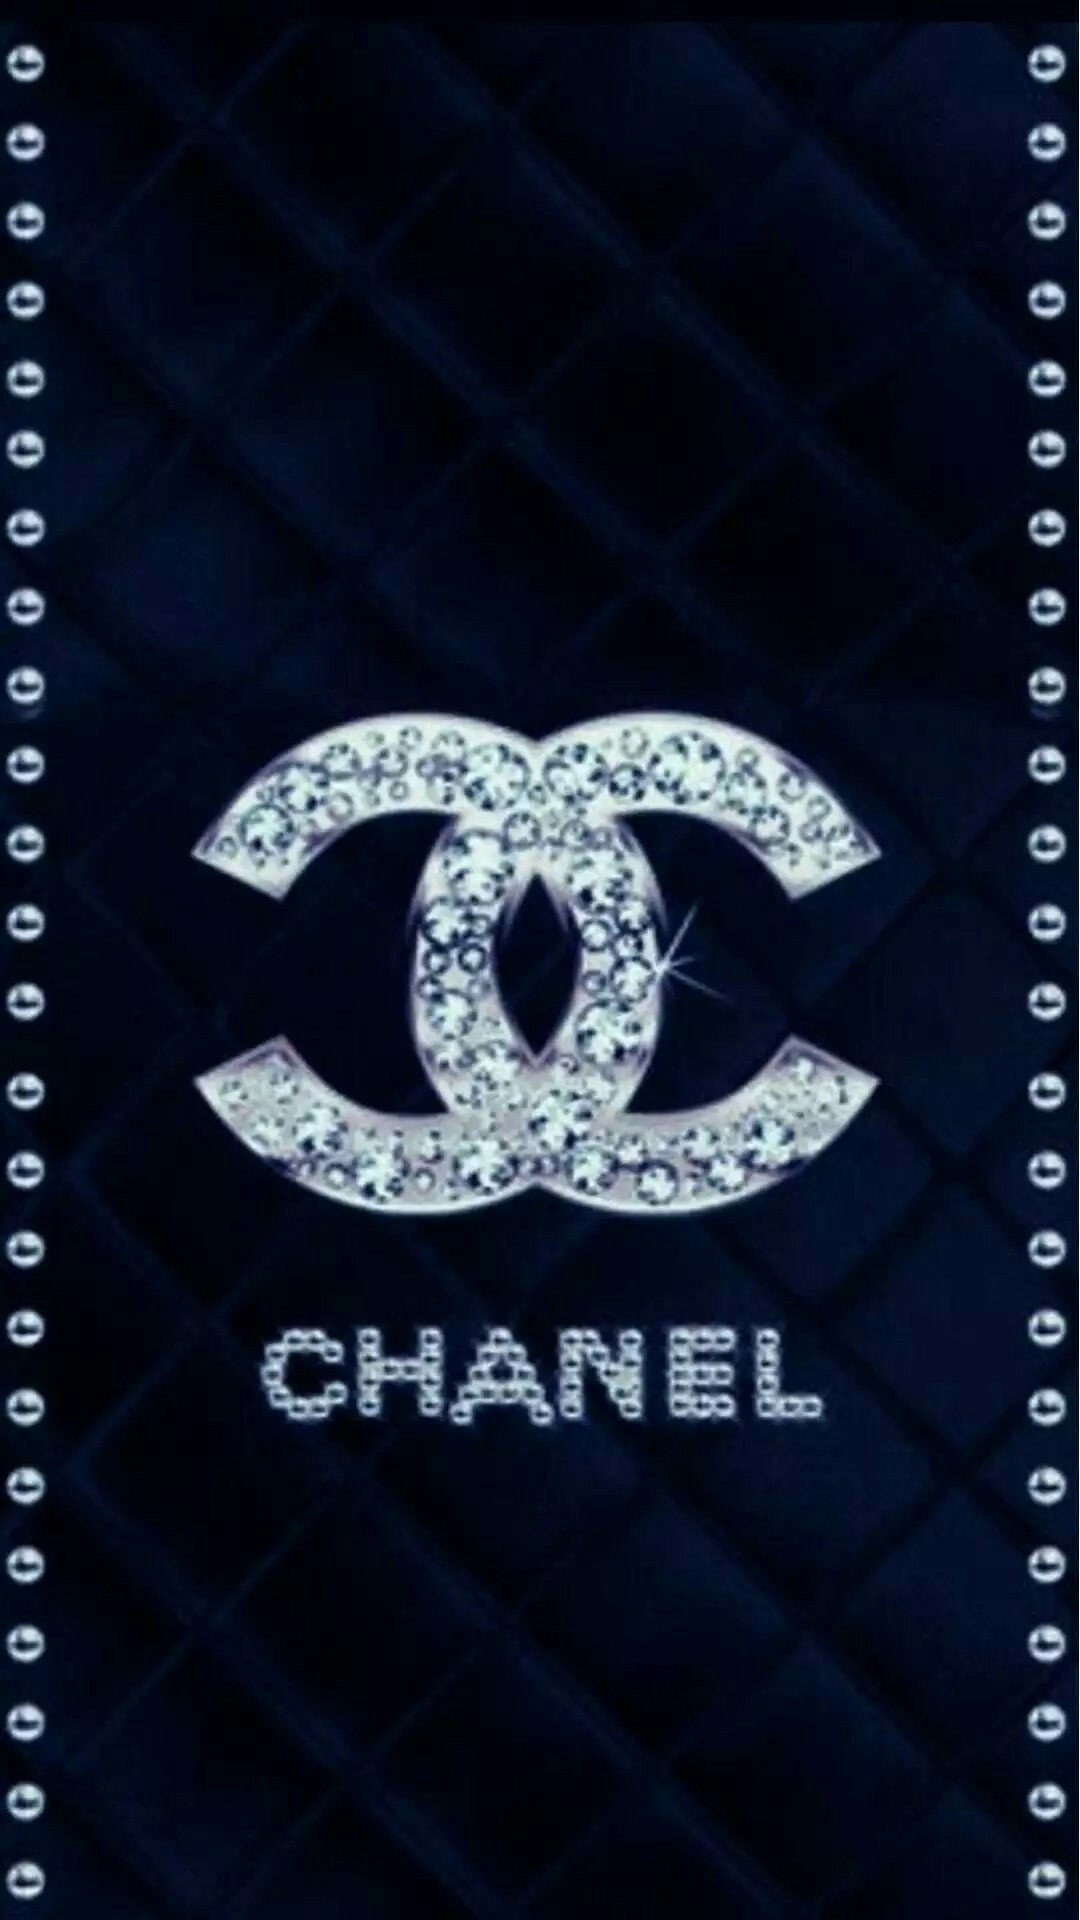 1080x1920 Coco Chanel Wallpaper, Chanel Background, Iphone Backgrounds, Iphone  Wallpapers, Wallpaper Backgrounds, Mobile Wallpaper, Iphone 5s, Uggs,  Diamond Wallpaper